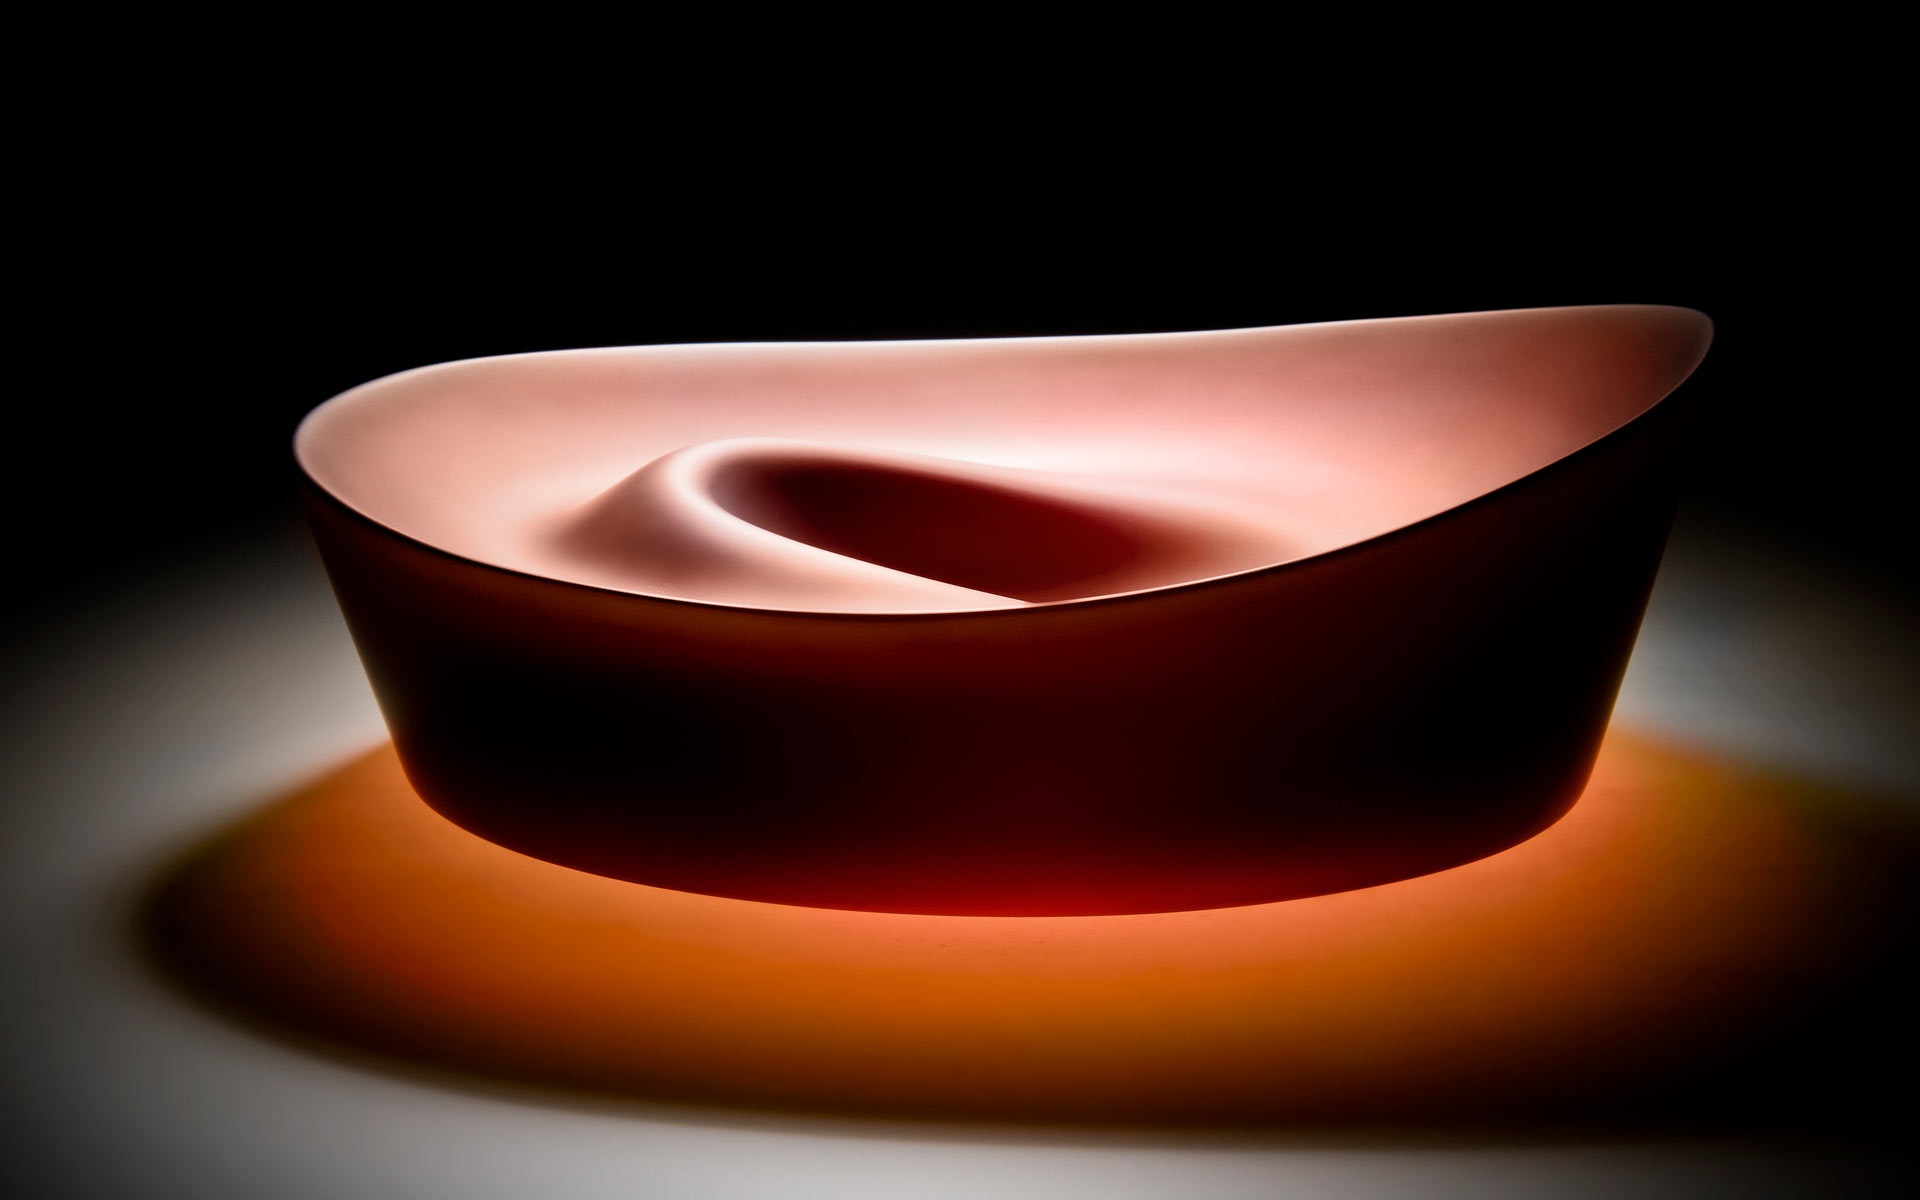 Ripple Series - Red Bowl Form